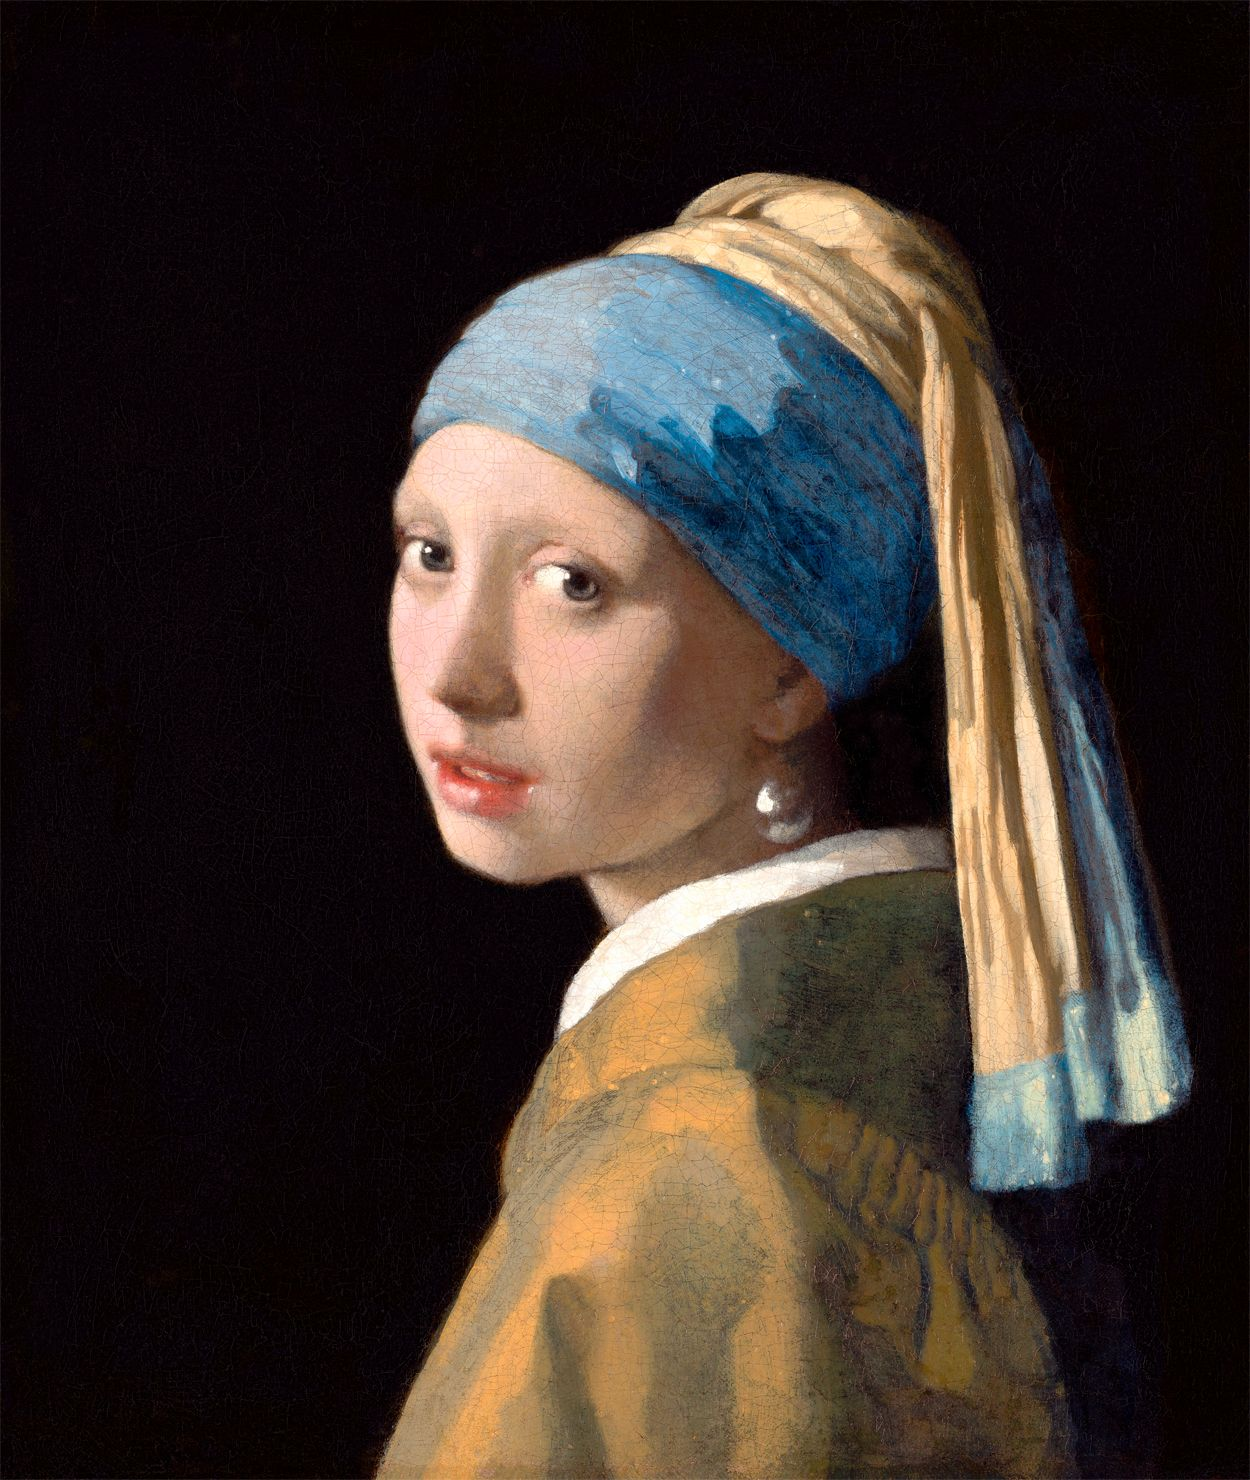 'Girl with a Pearl Earring - Johannes Vermeer' Poster by opheliashop